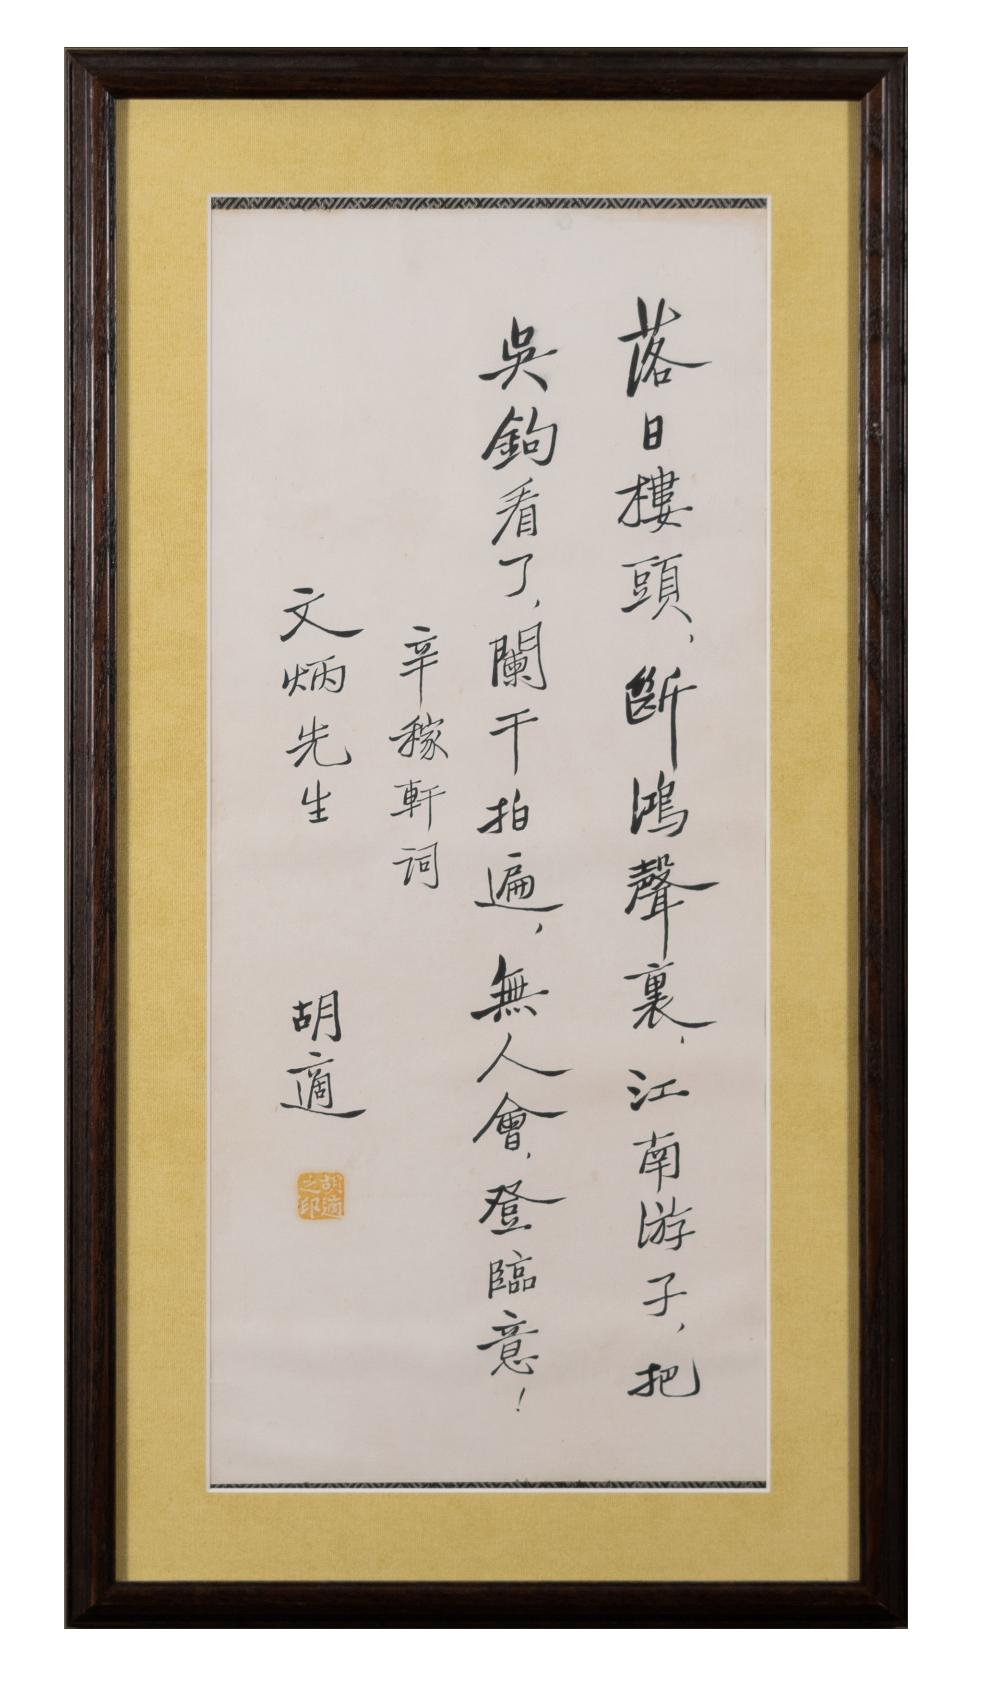 CALLIGRAPHY POEM BY HUSHI GIVEN TO WENBING